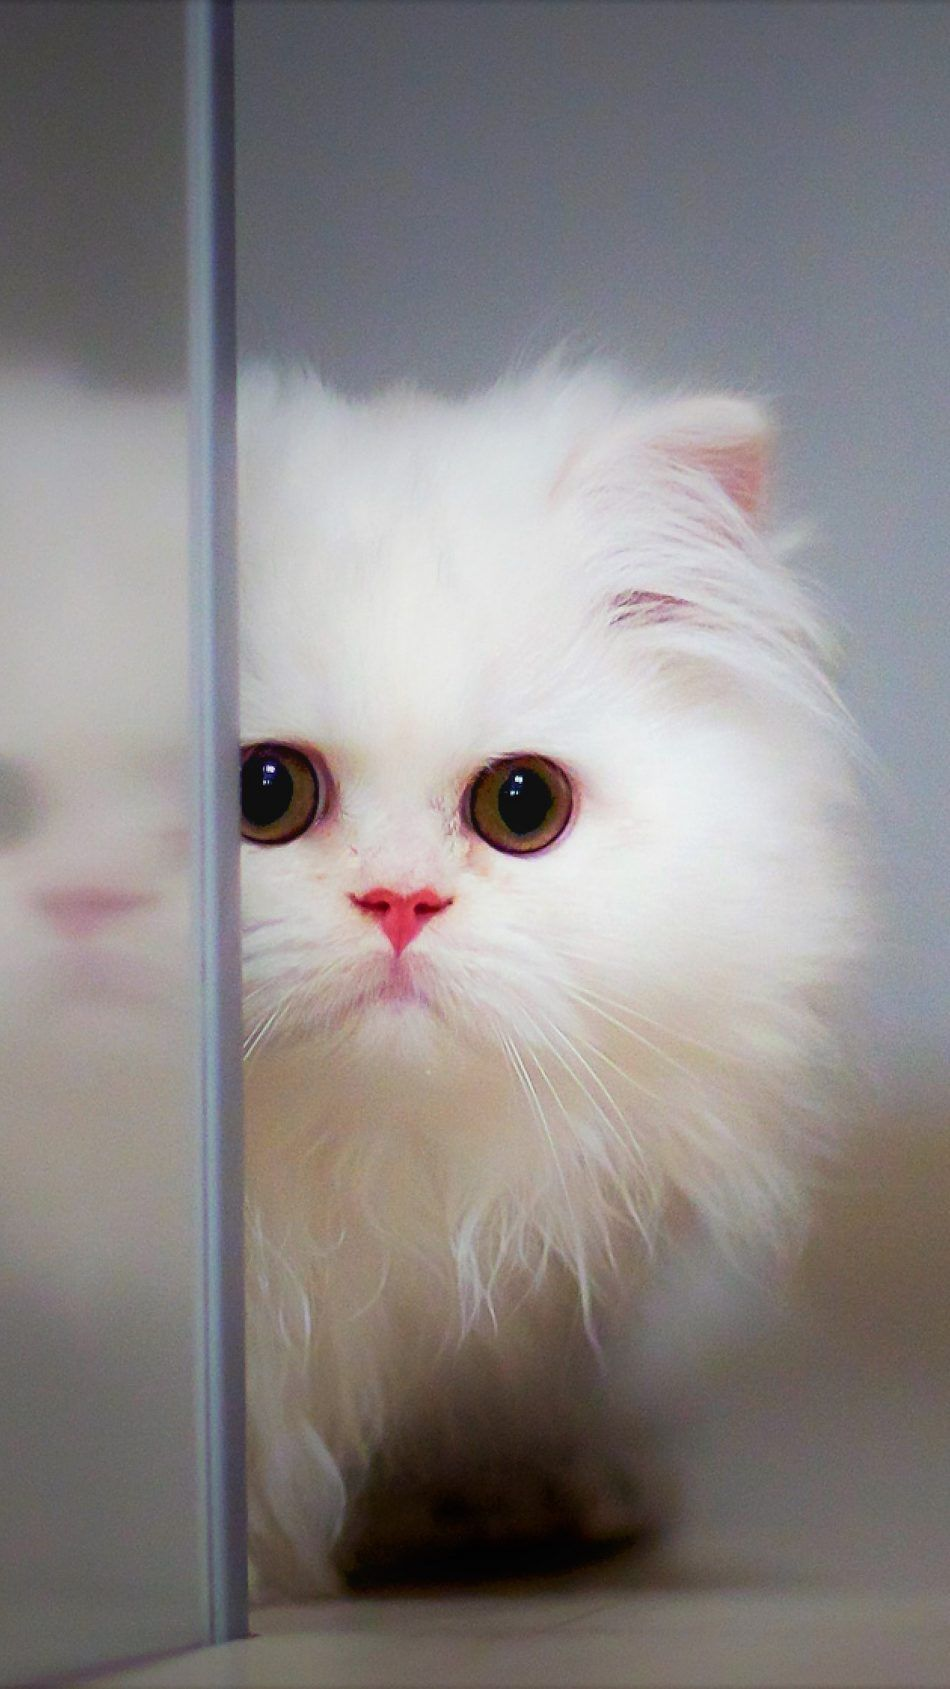 20 Fantastic Ideas Cute White Cats And Kittens Wallpaper In 2020 Kitten Wallpaper Cute Cat Wallpaper Kittens Cutest